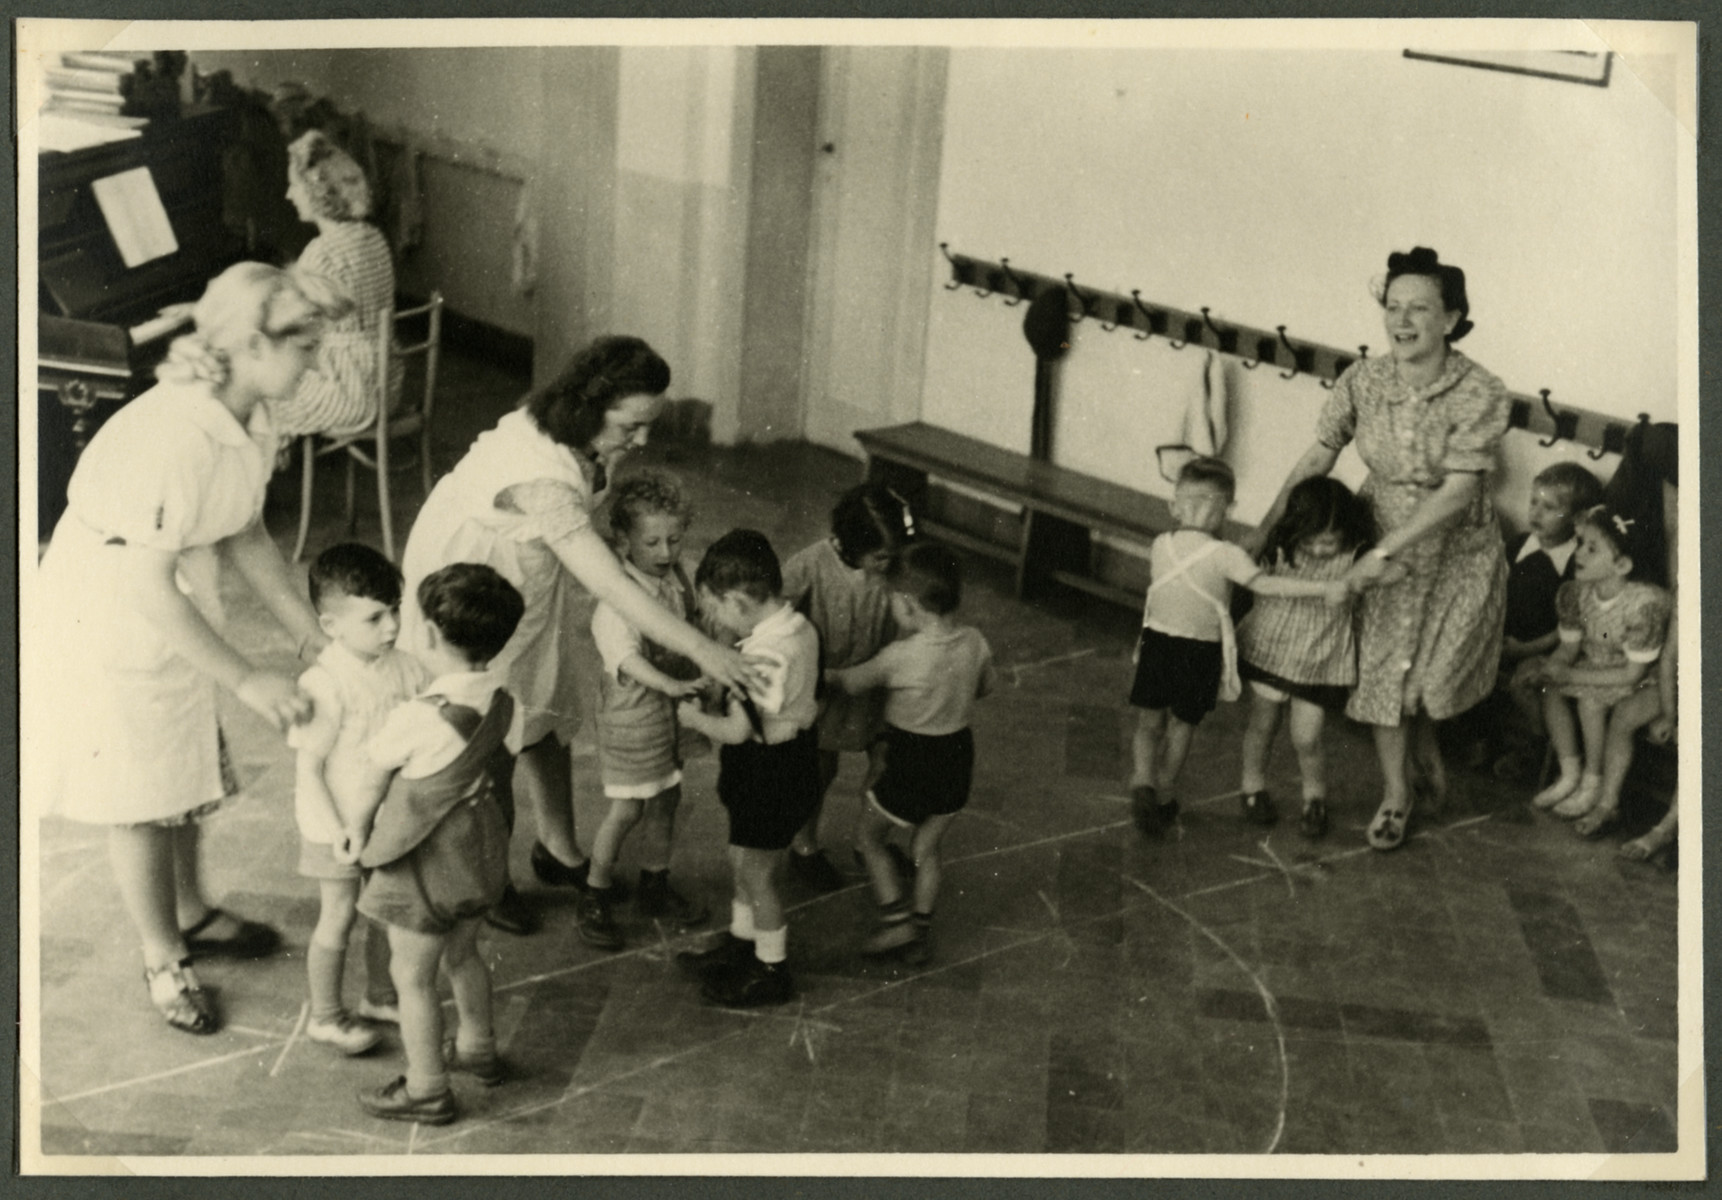 Staff of the Nos Petits children's home dance with the children.